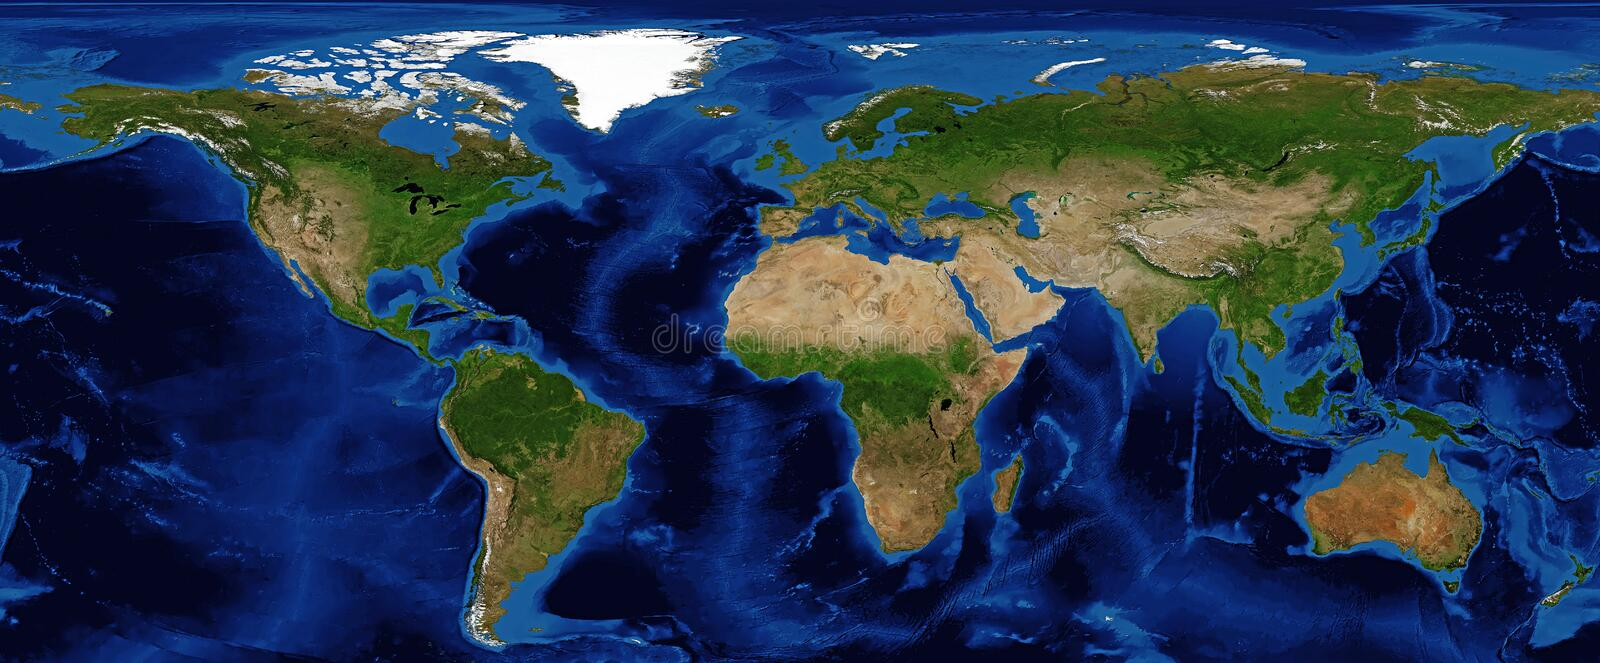 World Map Shaded Relief with Bathymetry. And snow cover in Summer, showing continents in Summer stock photos